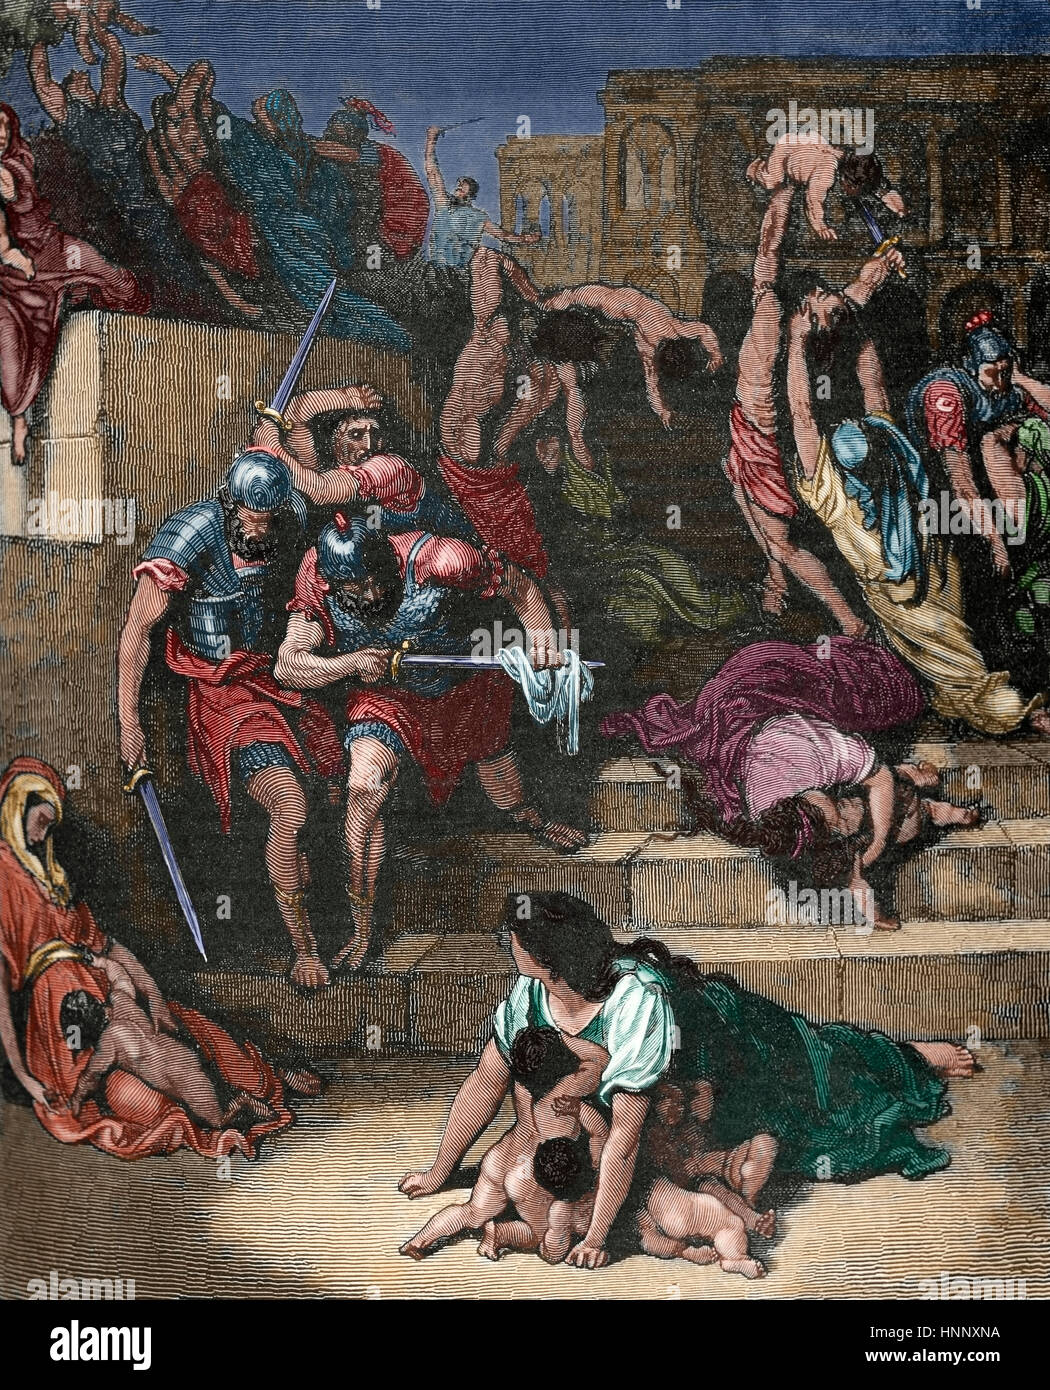 Massacre of the Innocents. Illustration by Gustave Dore (1832-1883). Colored engraving. Stock Photo